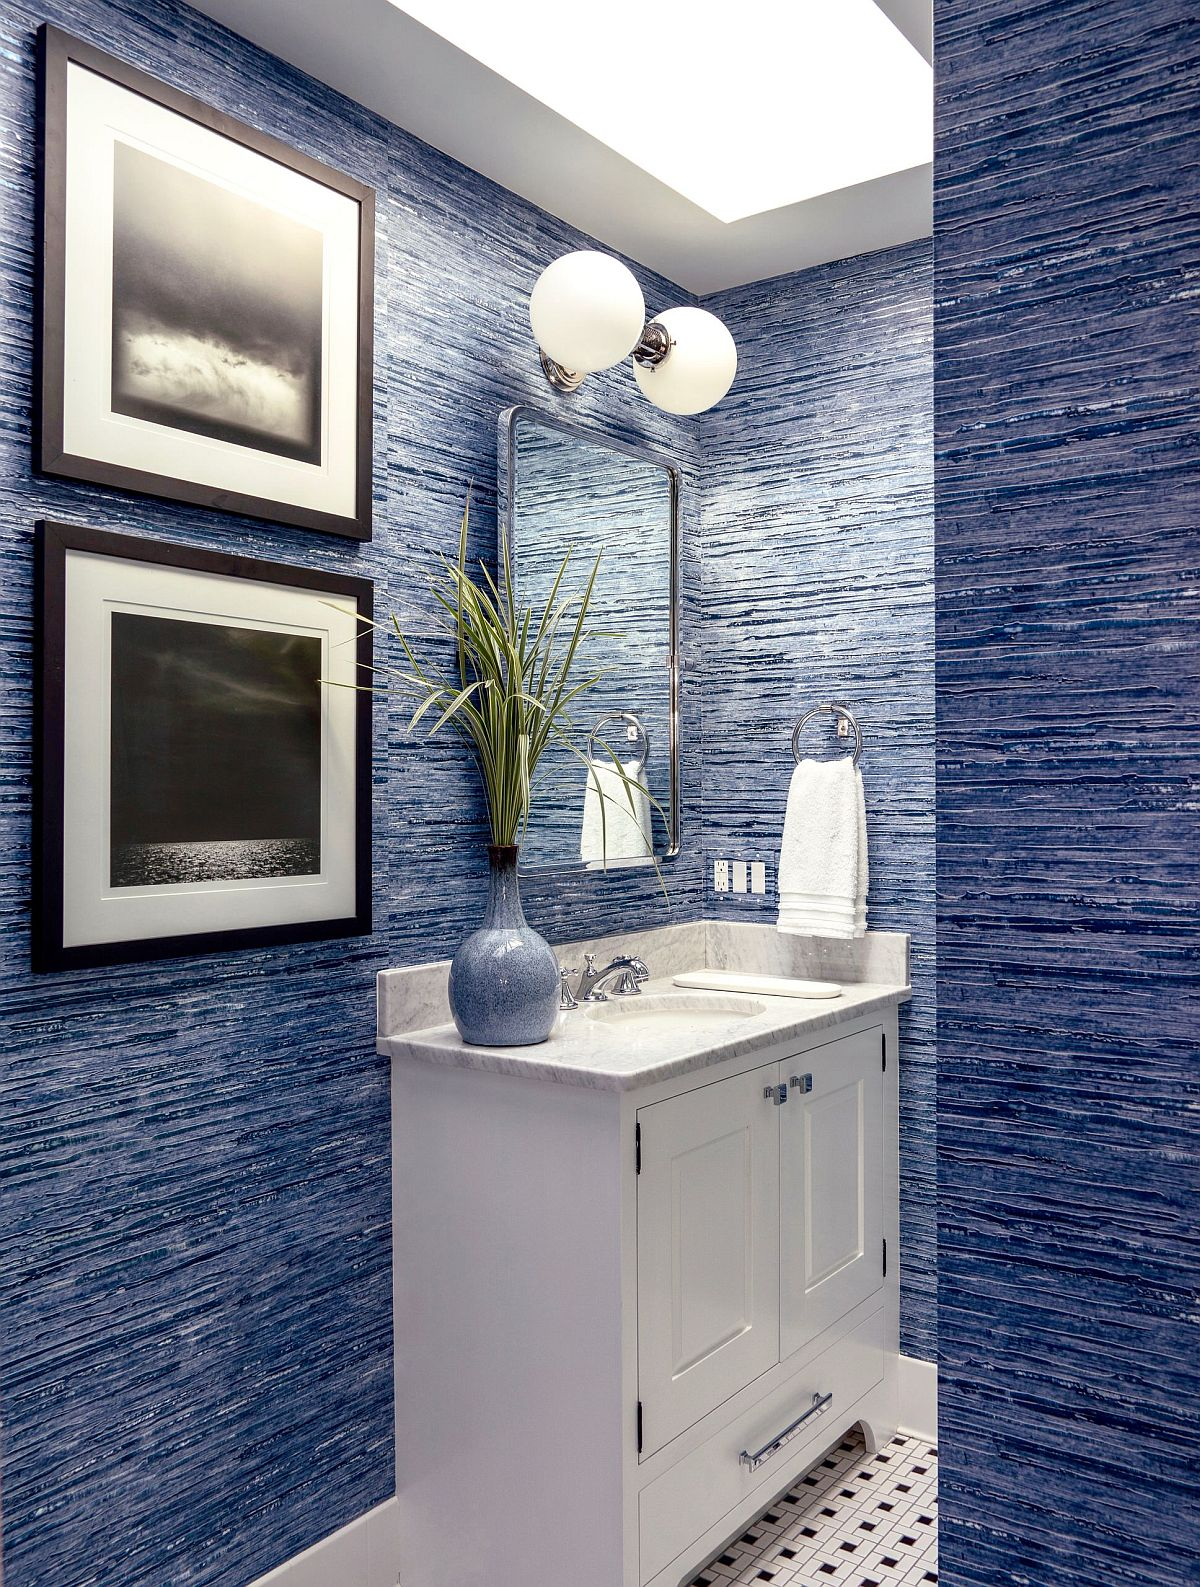 Powder room in blue with textured walls, skylight and flooring with plenty of pattern